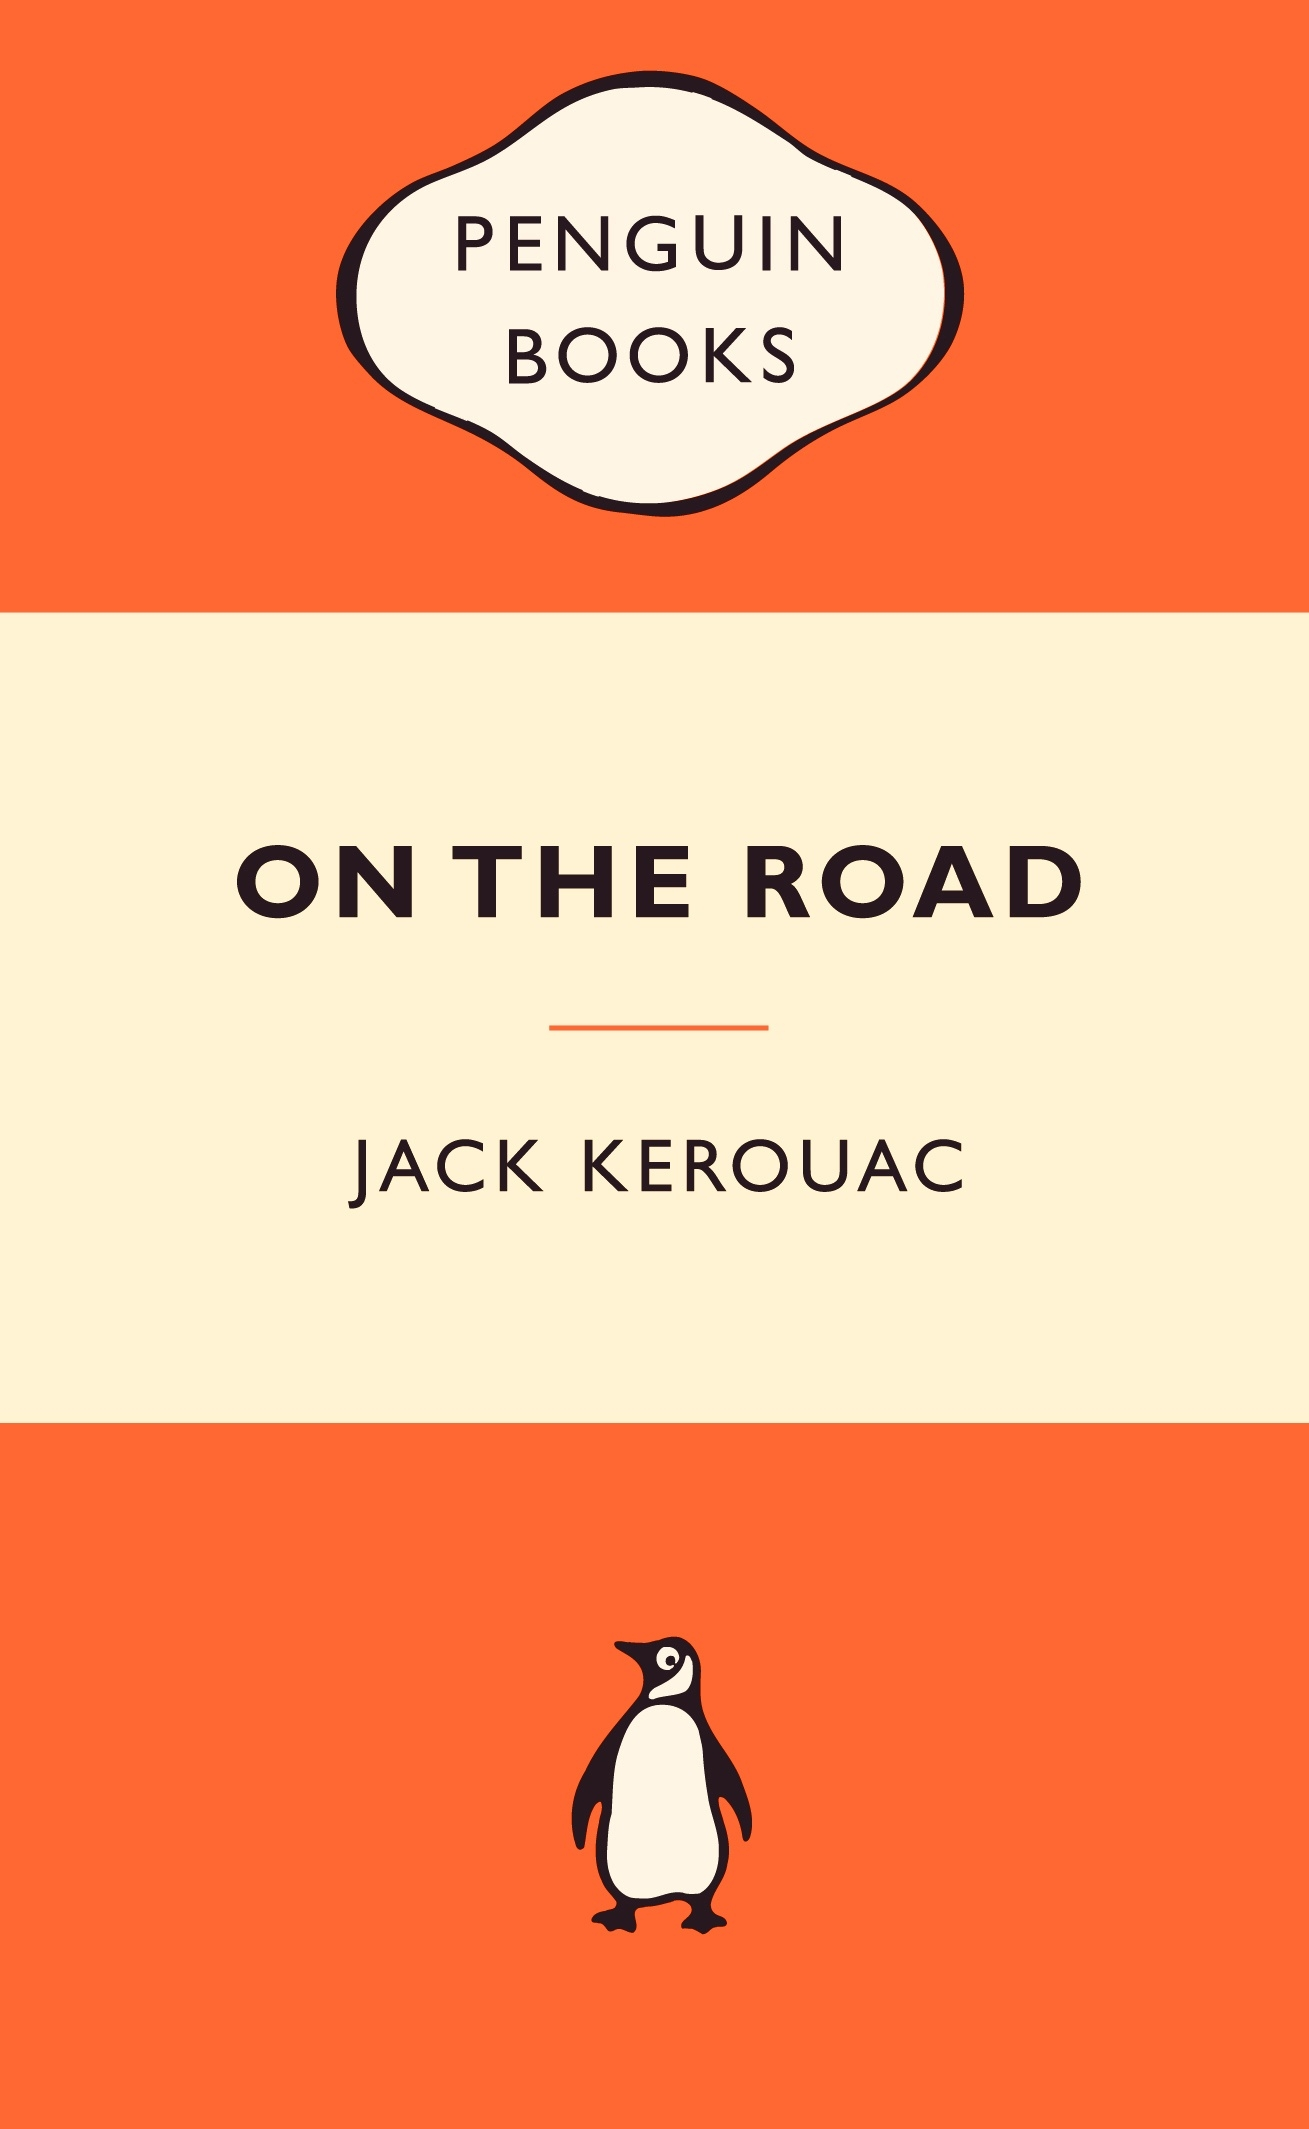 a literary analysis of the novel on the road by jack kerouac Finally, the novel also begs comparison to a foundational text of english literature, the canterbury tales, whose plot is entirely made up of stories told by travelers on the road to canterbury through these comparisons, kerouac's novel can be seen as claiming that the paradigmatic journey of his generation is a kind of aimless wandering.